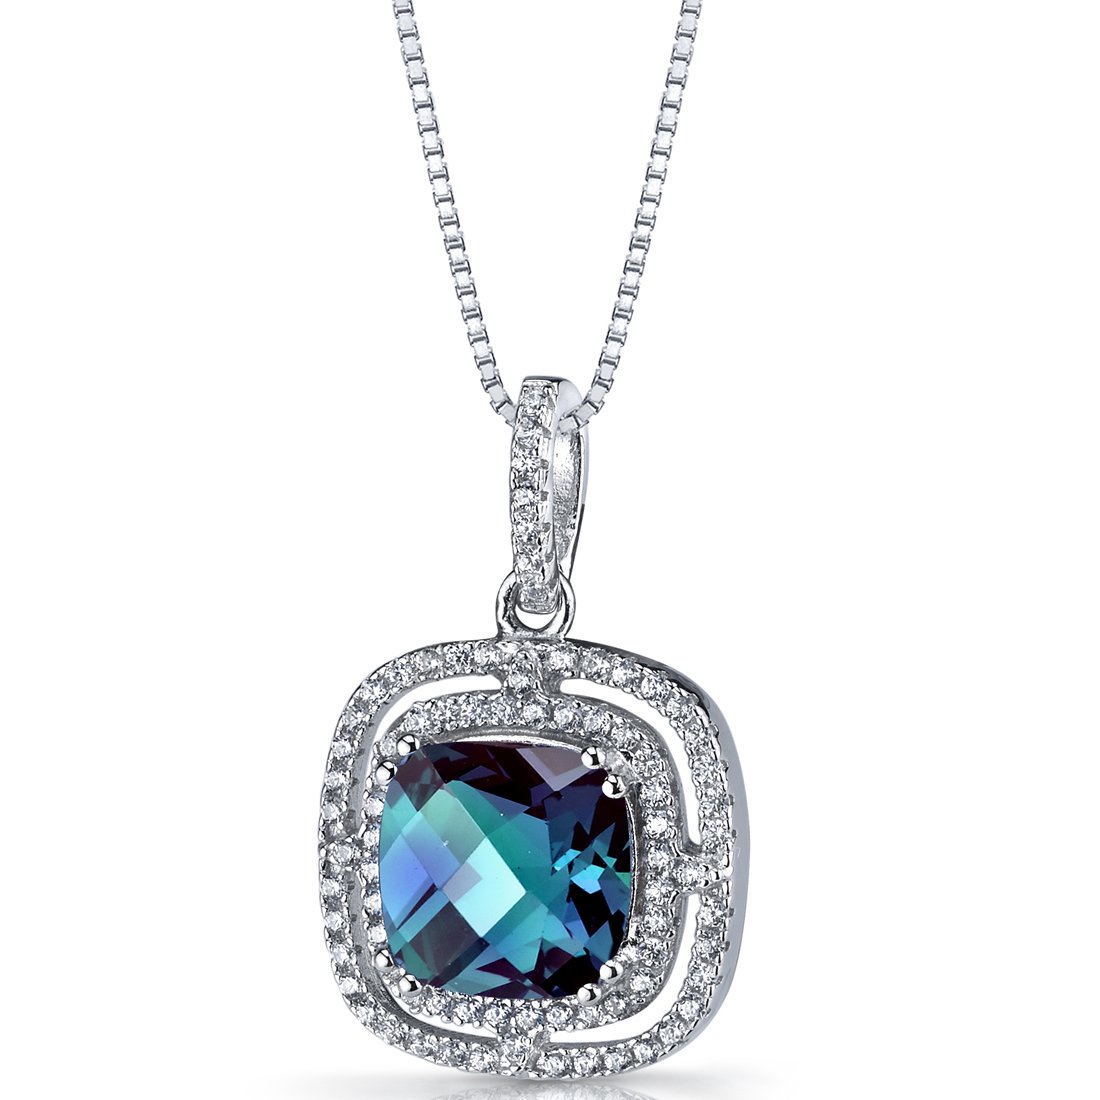 Simulated Alexandrite Cushion Cut Pendant Necklace Sterling Silver 4.25 Carats